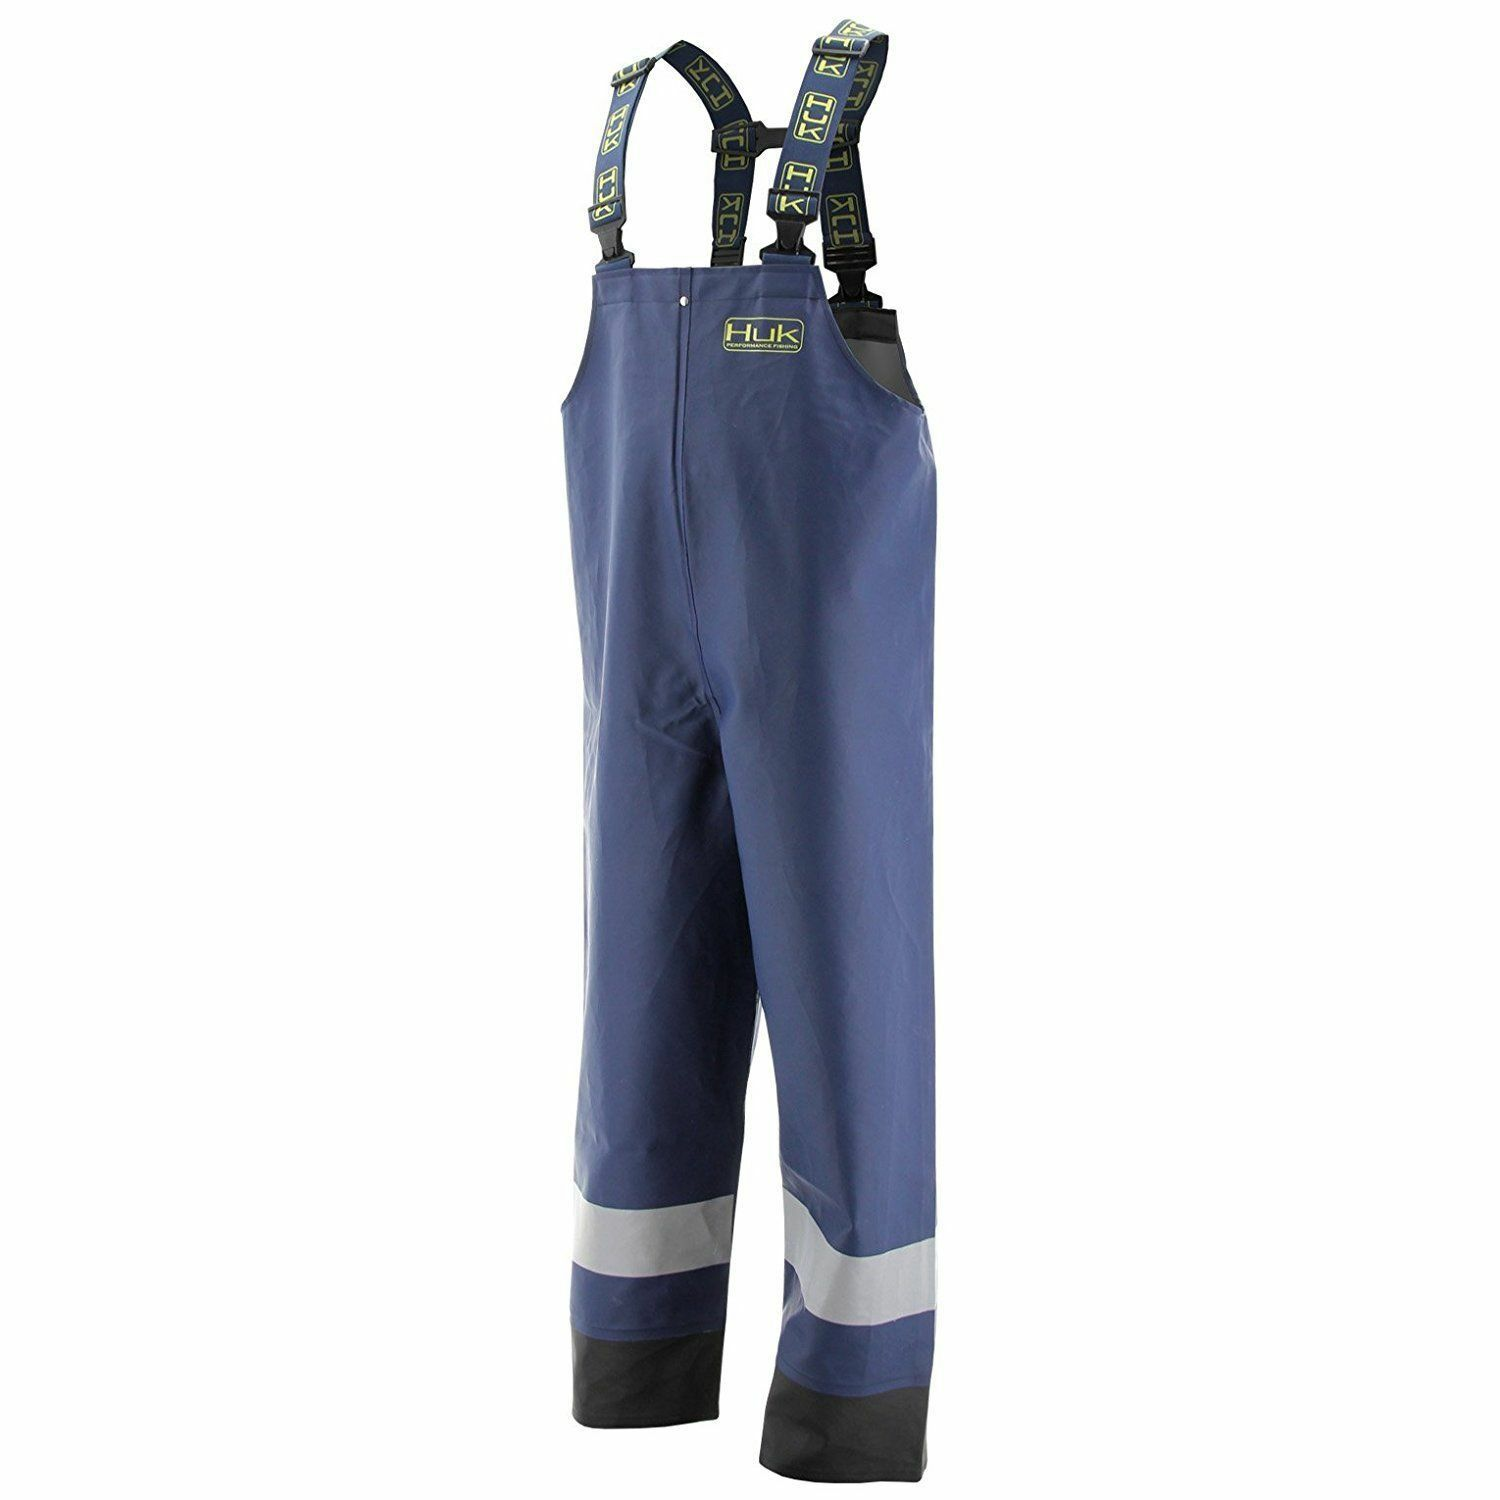 2437 Huk Commercial Grade PVC Waterproof Foul Weather Bib  Navy Size 2XL  70% off cheap